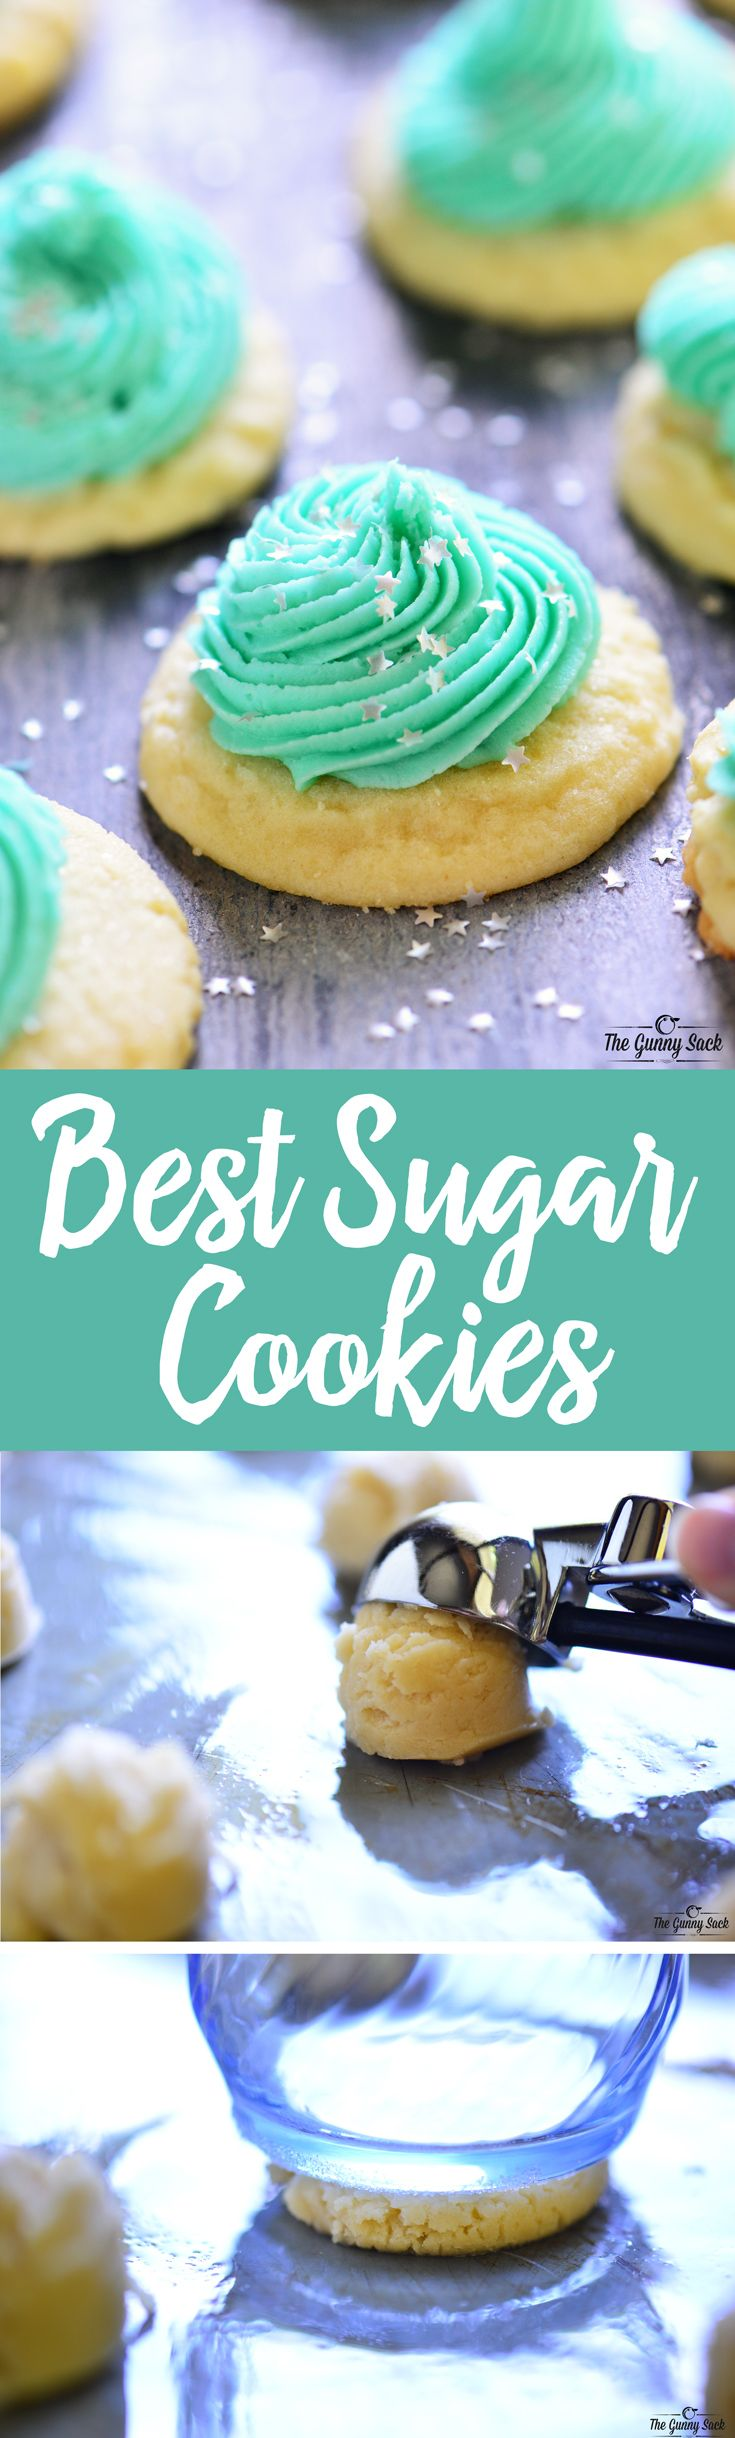 The BEST Sugar Cookie recipe for soft, tender cookies with NO refrigeration needed, NO rolling dough and NO cookie cutters! Perfect for Christmas cookies!